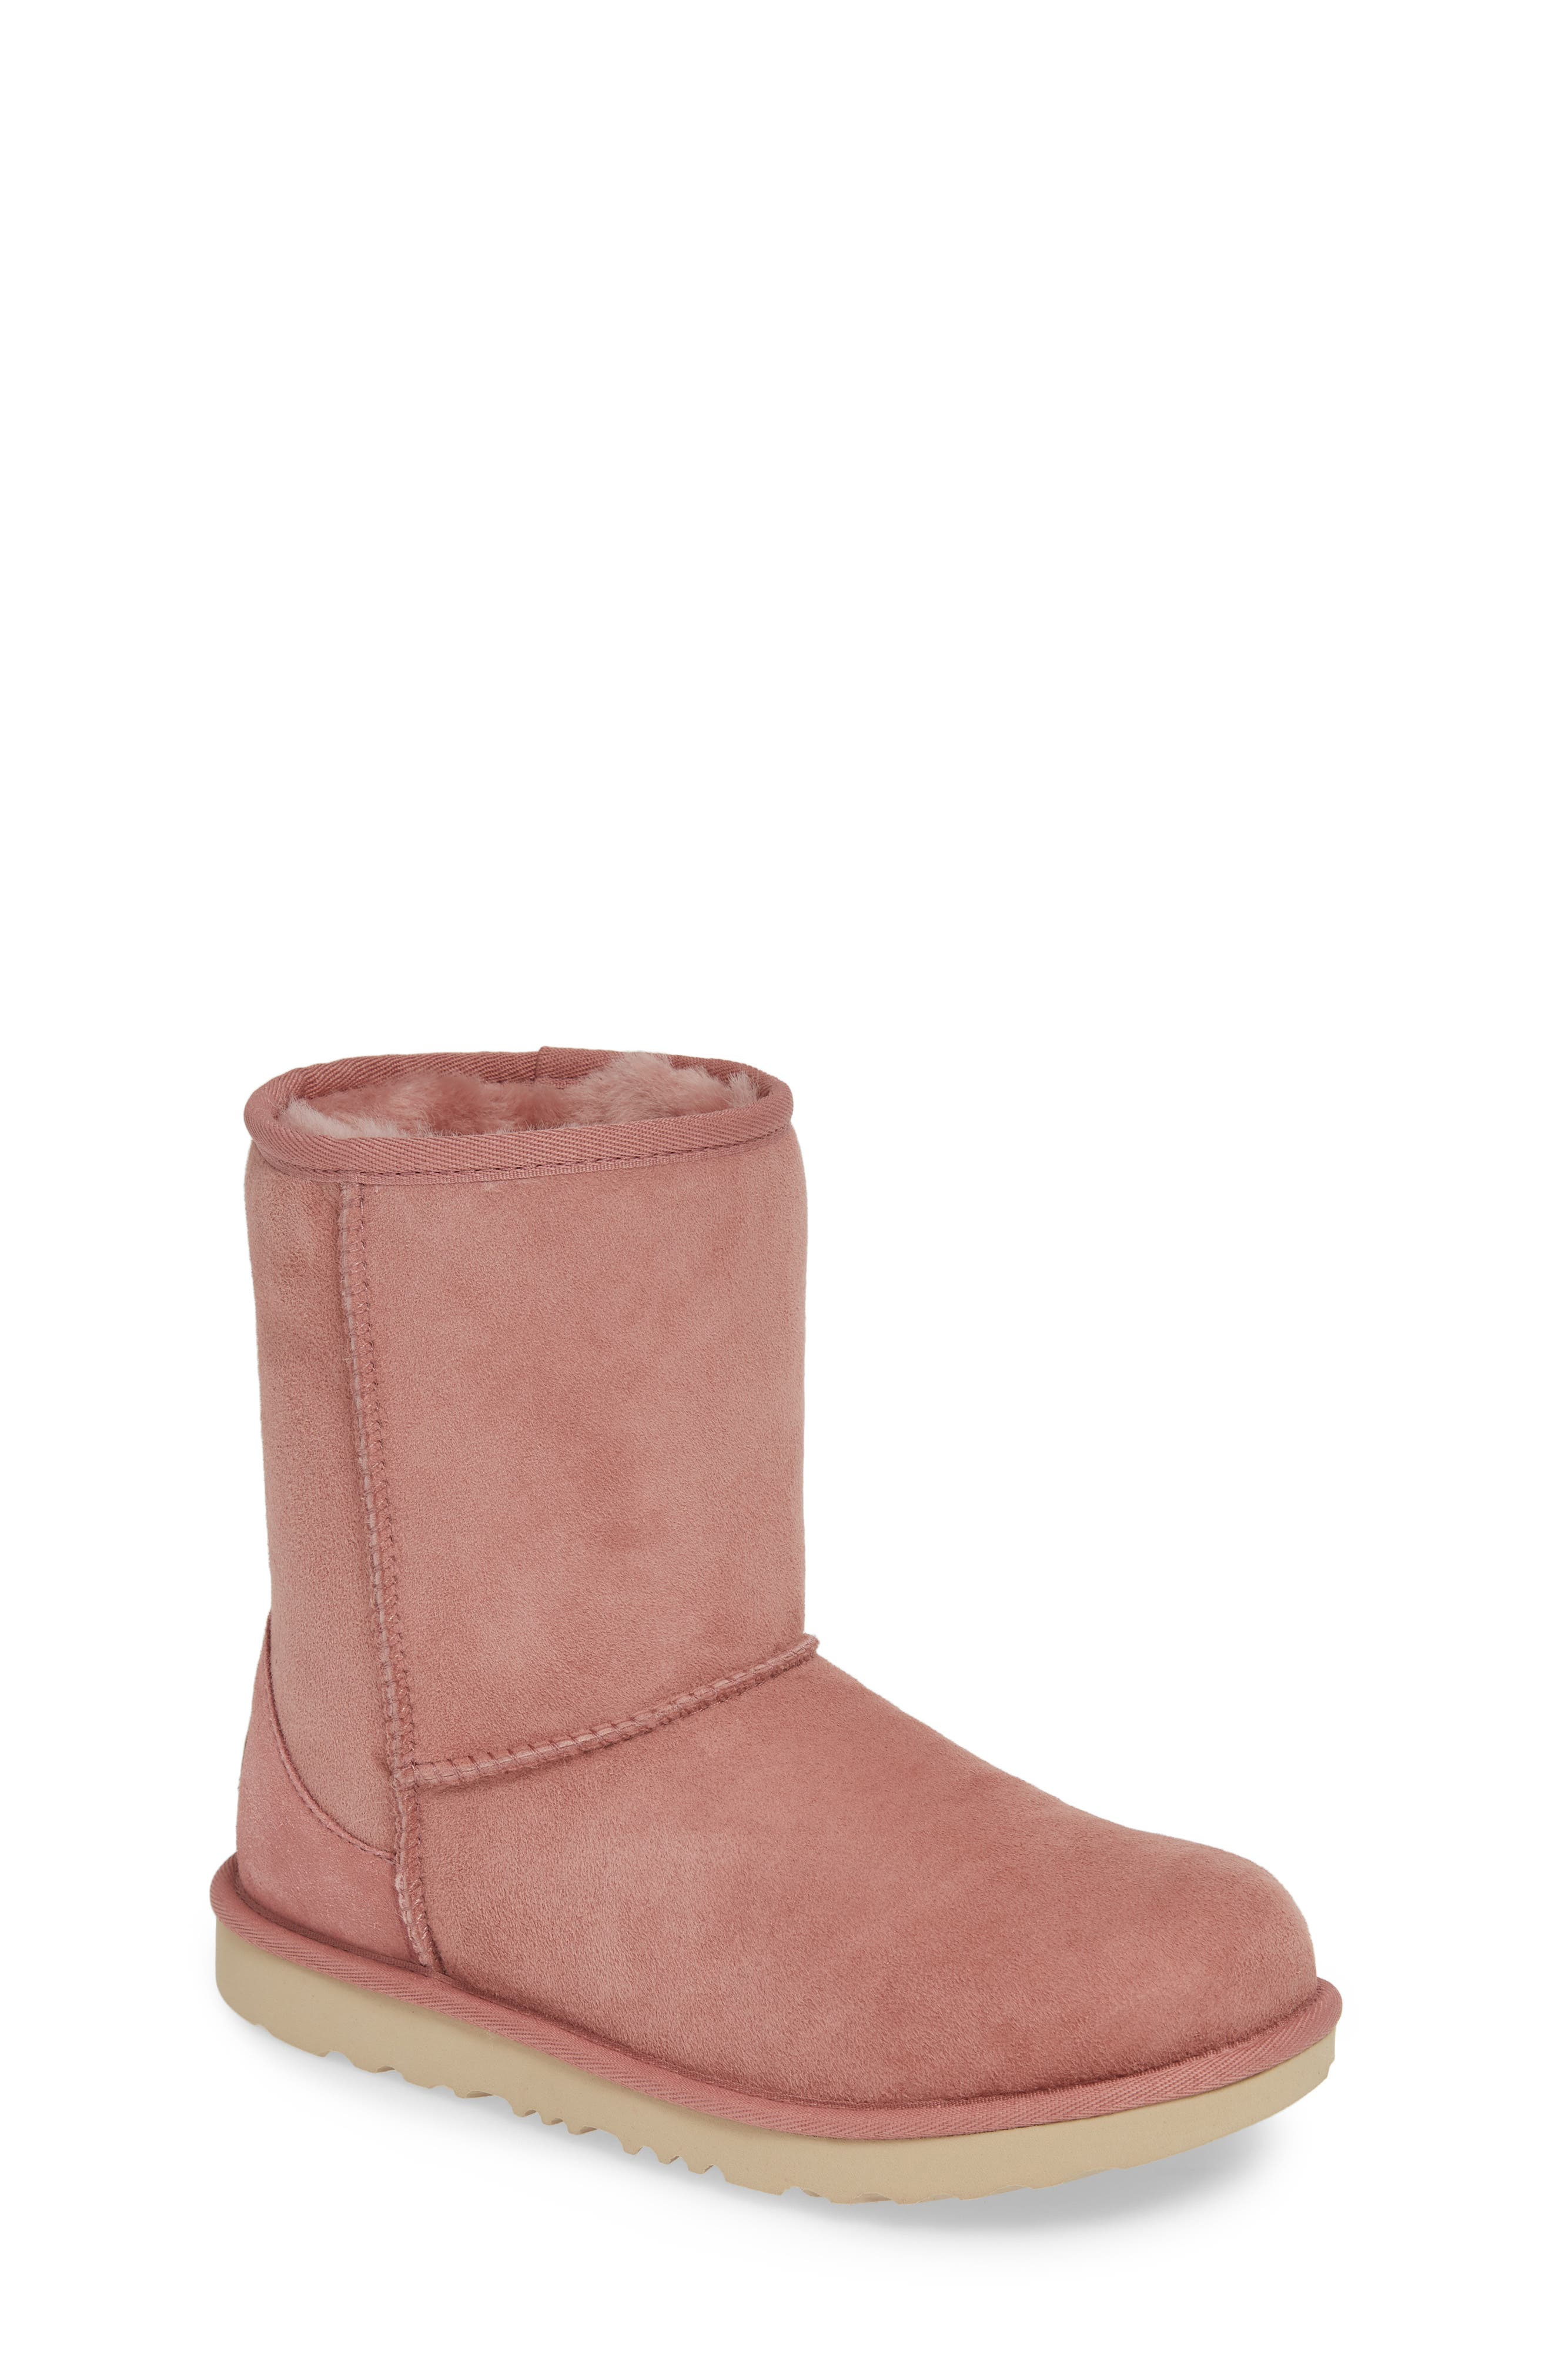 UGG<SUP>®</SUP> Classic Short II Water Resistant Genuine Shearling Boot, Main, color, PINK DAWN